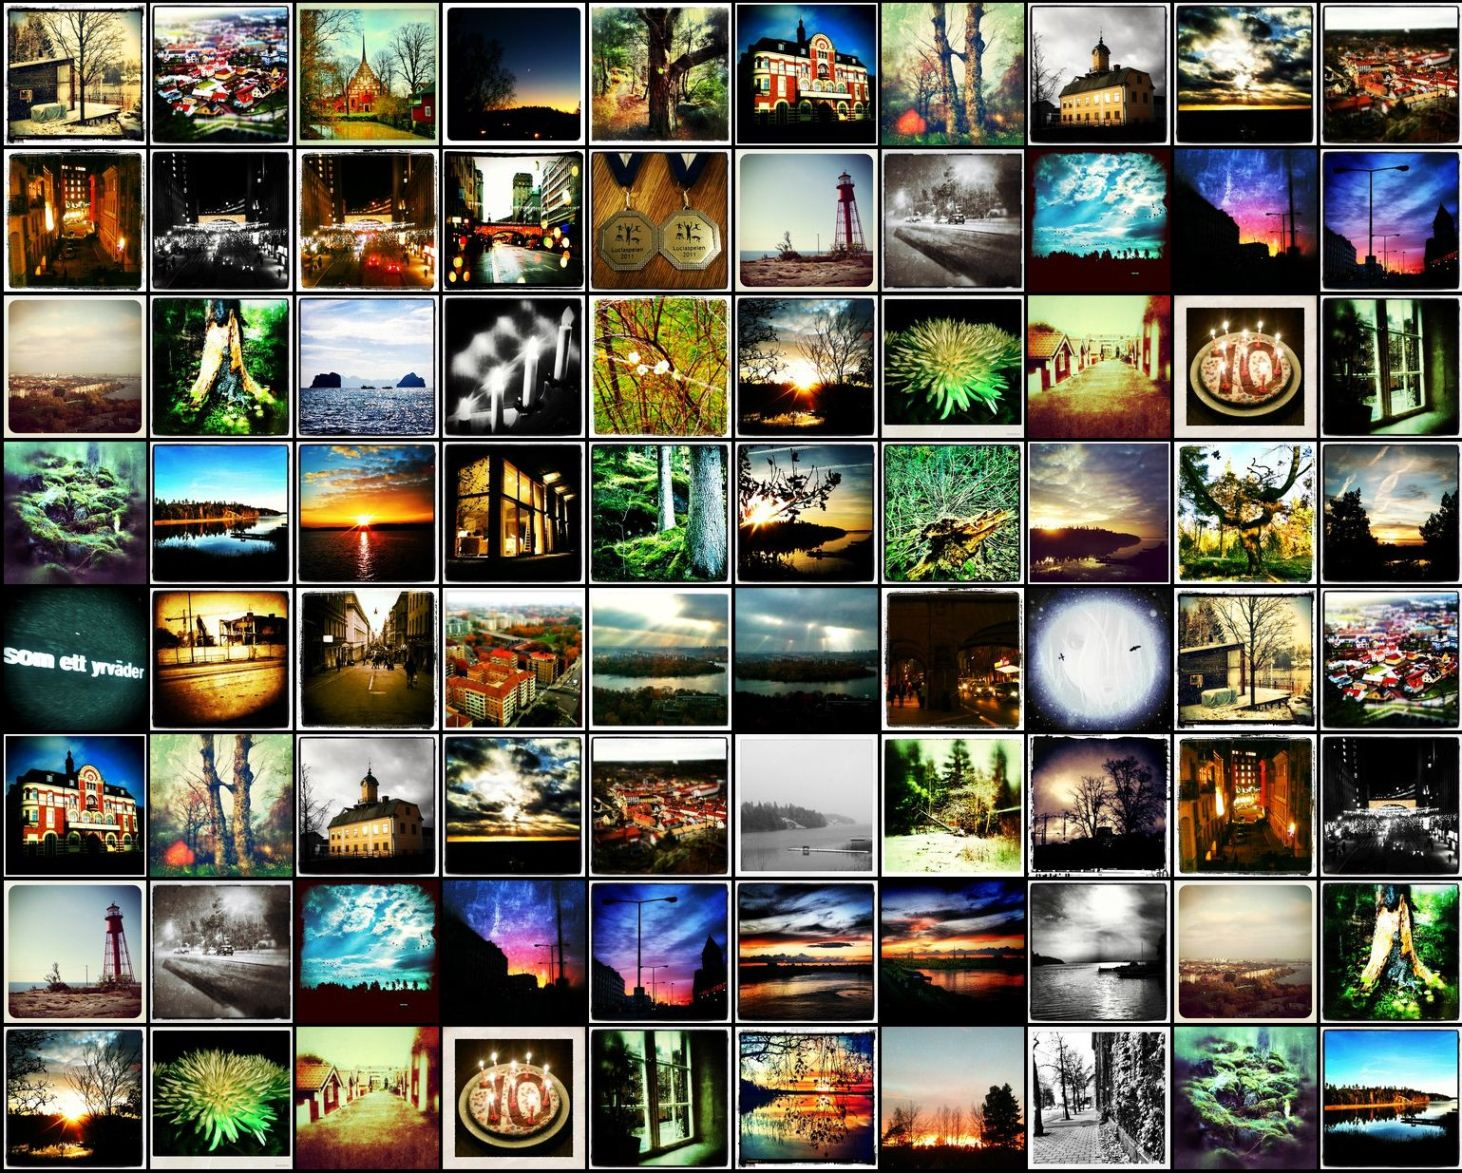 How to create a twitter background image from your instagram photos twitter background instagram photos voltagebd Image collections